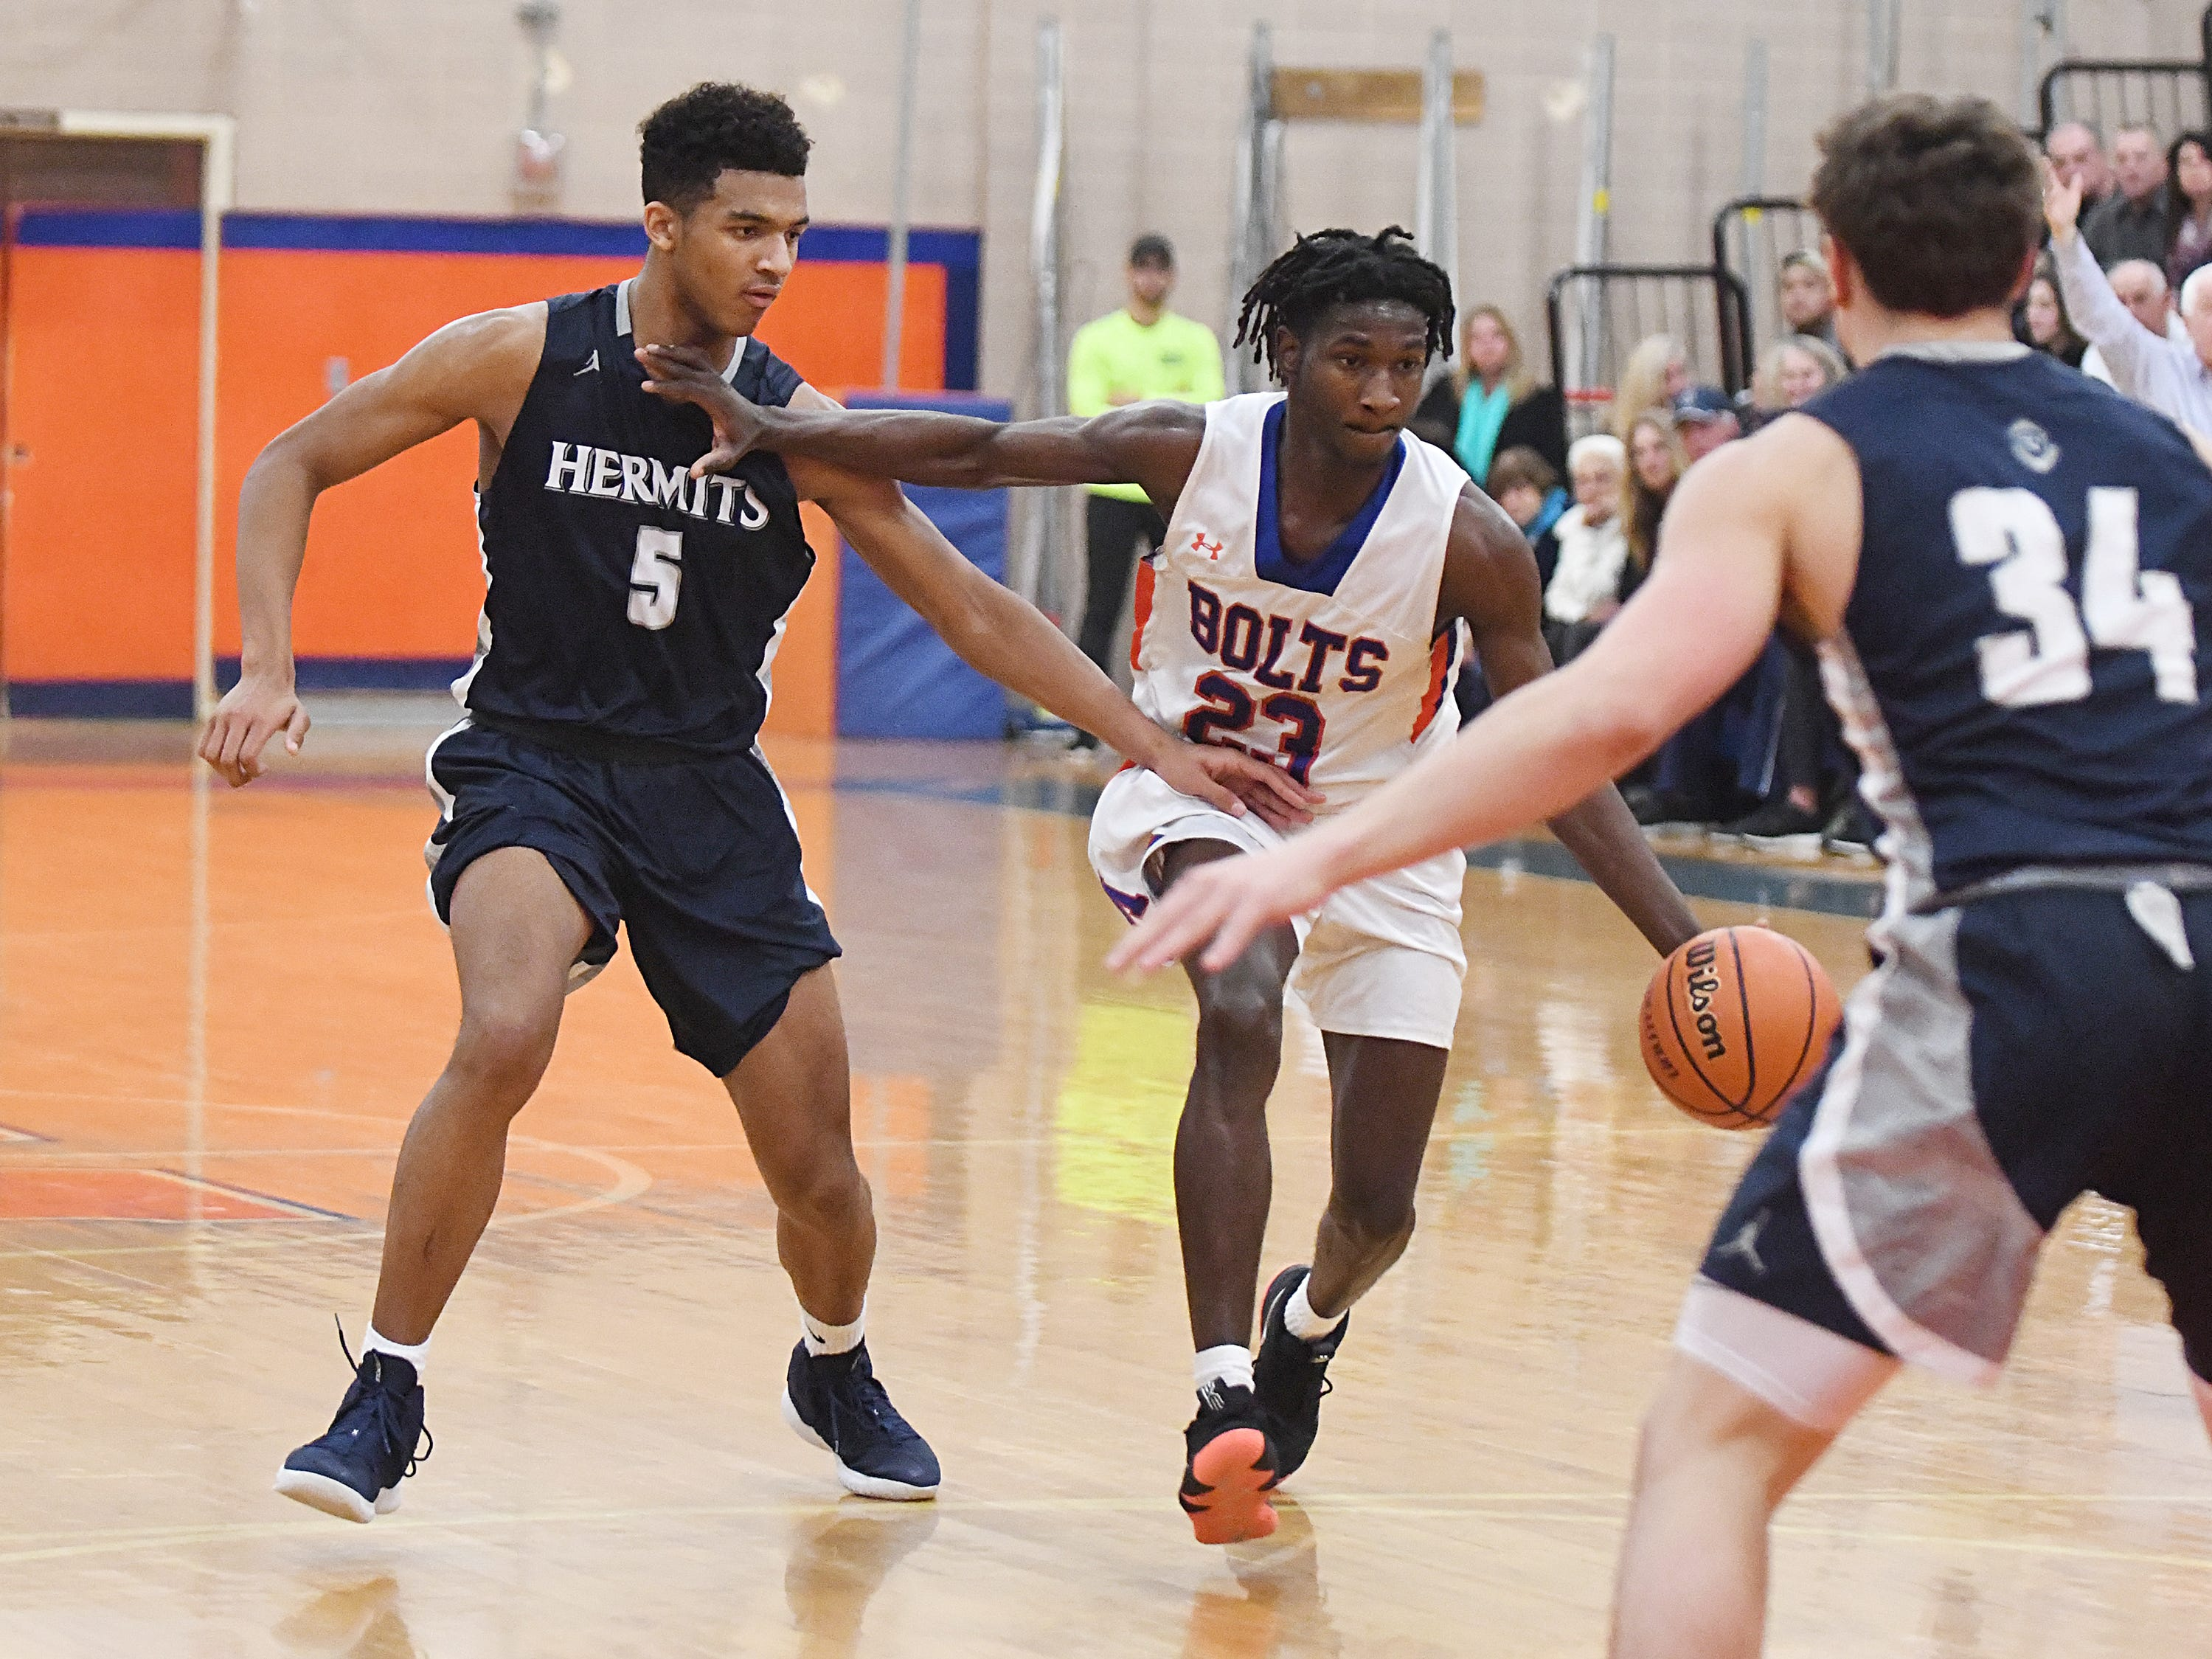 Millville's Rynell Lawrence drives the ball away from St. Augustine's Charles Solomon. The Hermits topped the Thunderbolts 66-53 on Friday, Jan. 18, 2019.